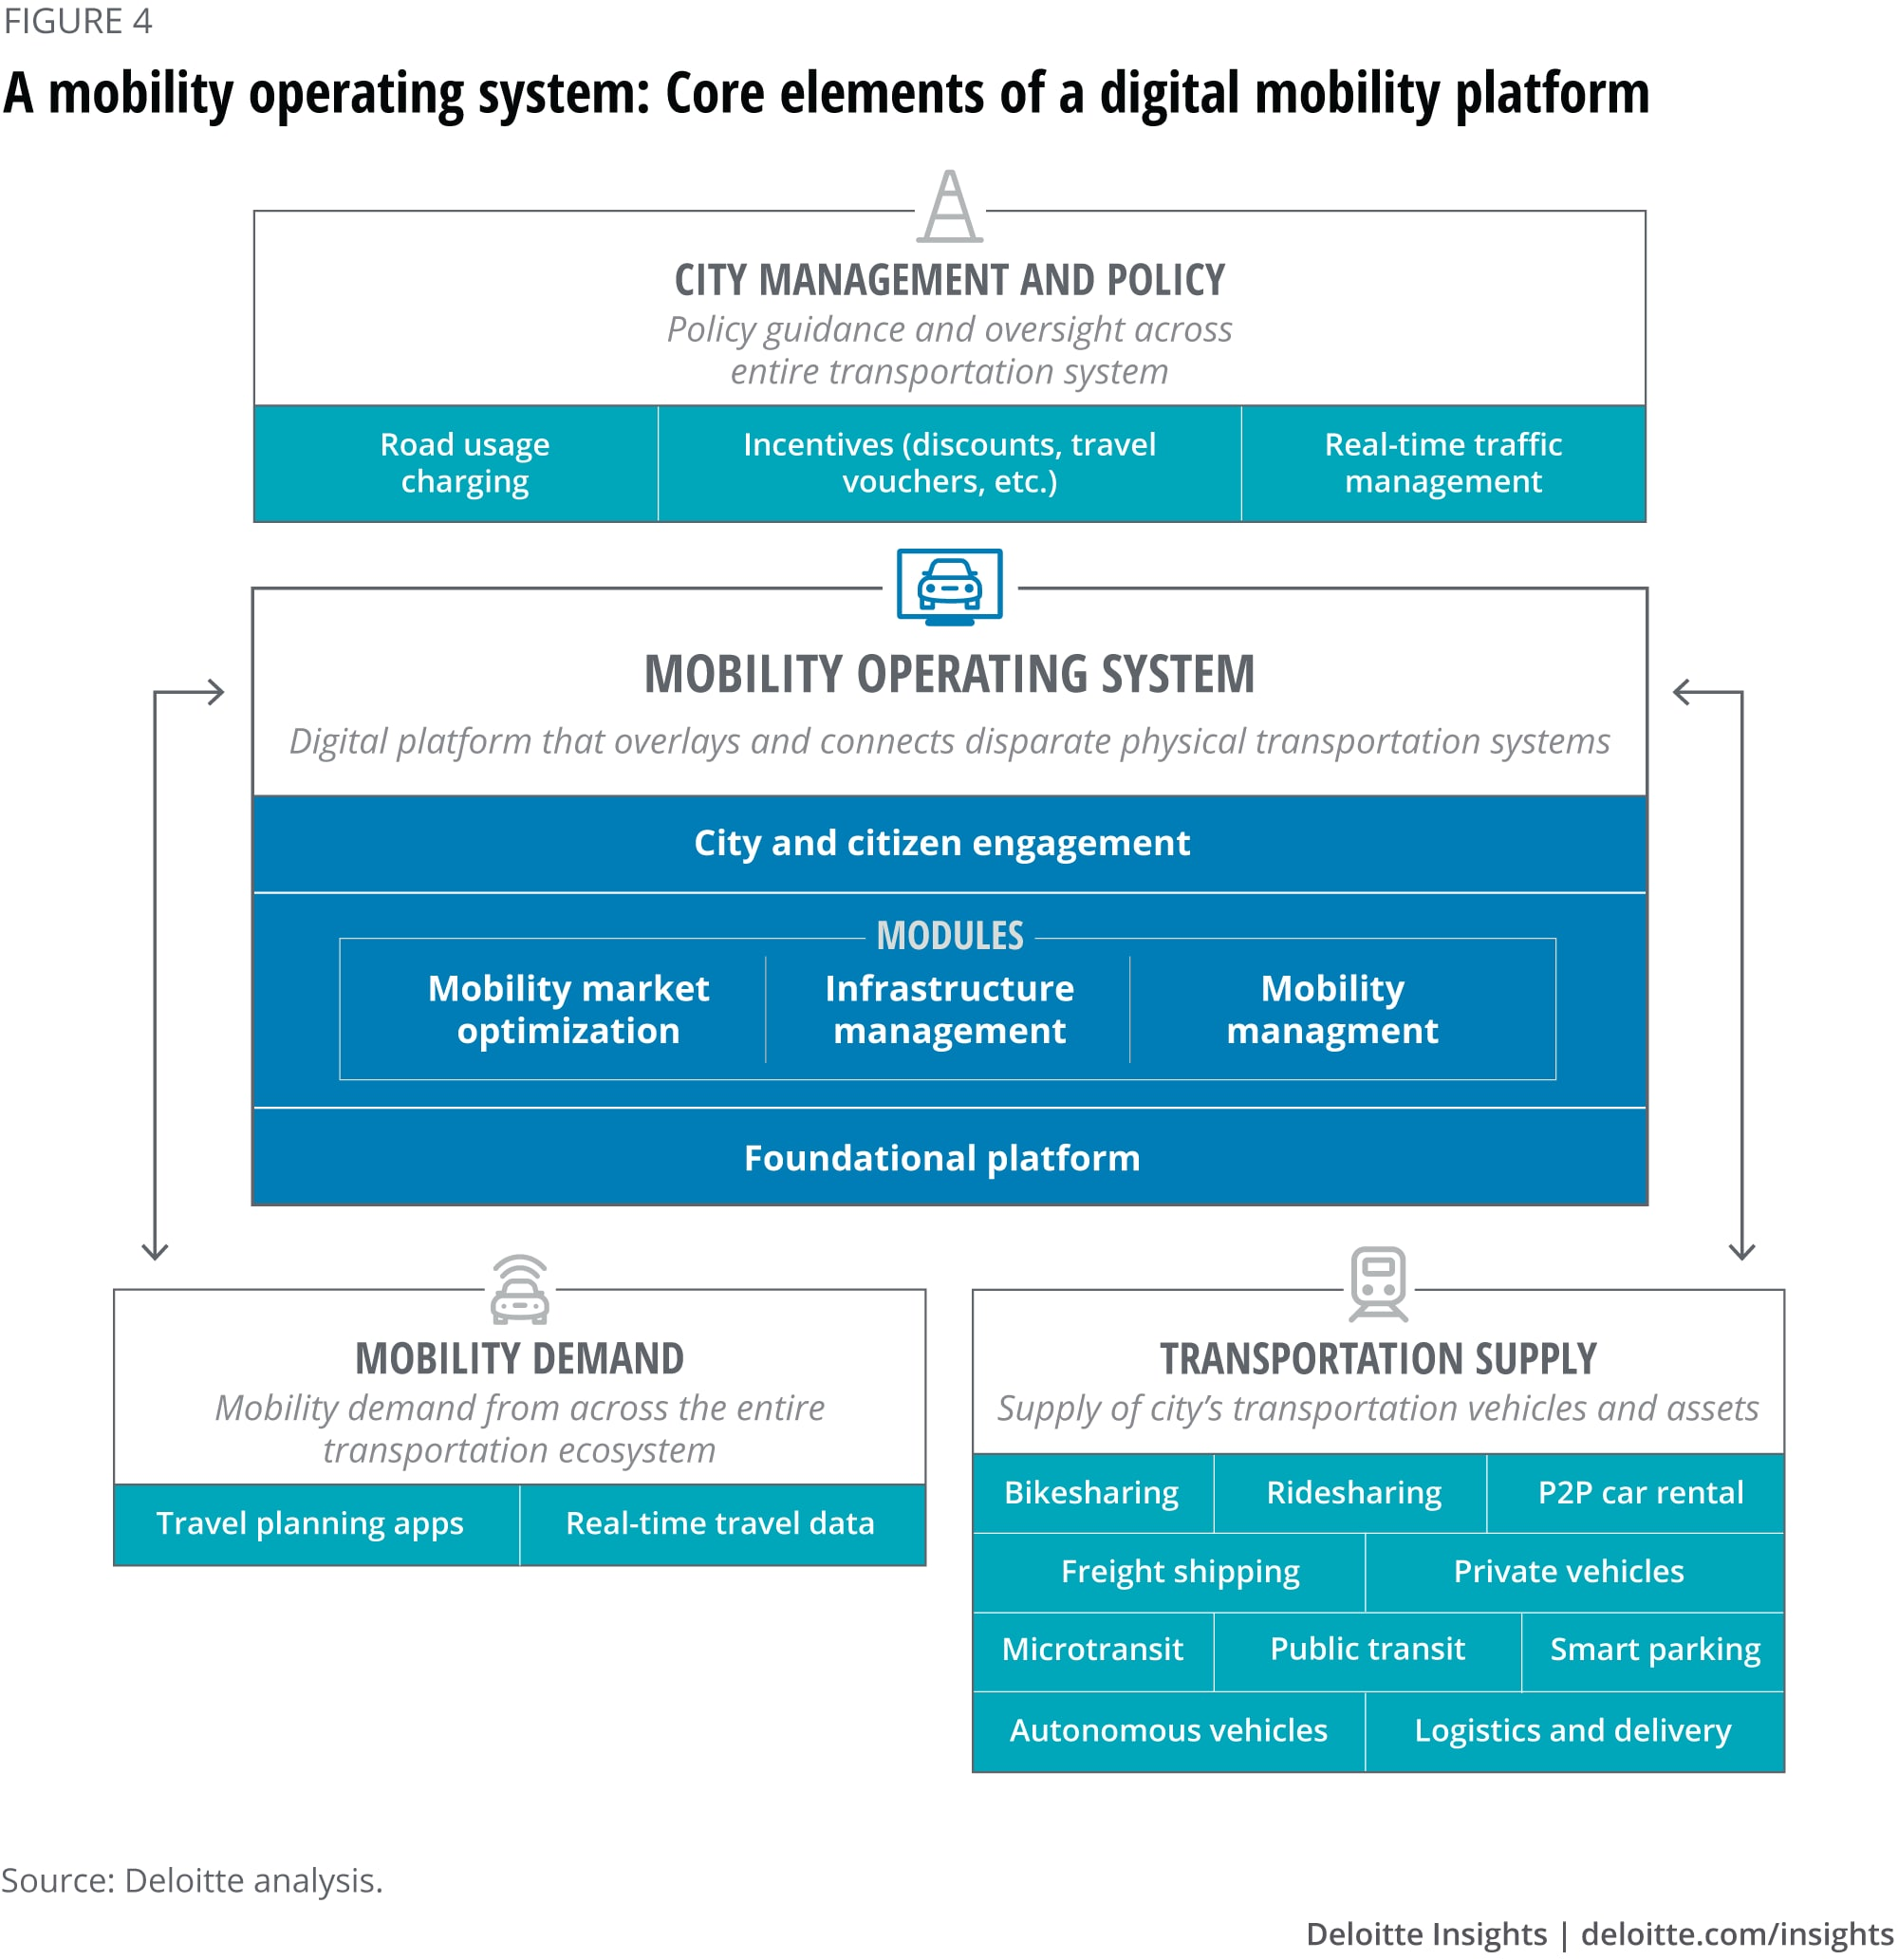 Mobility operating system core elements